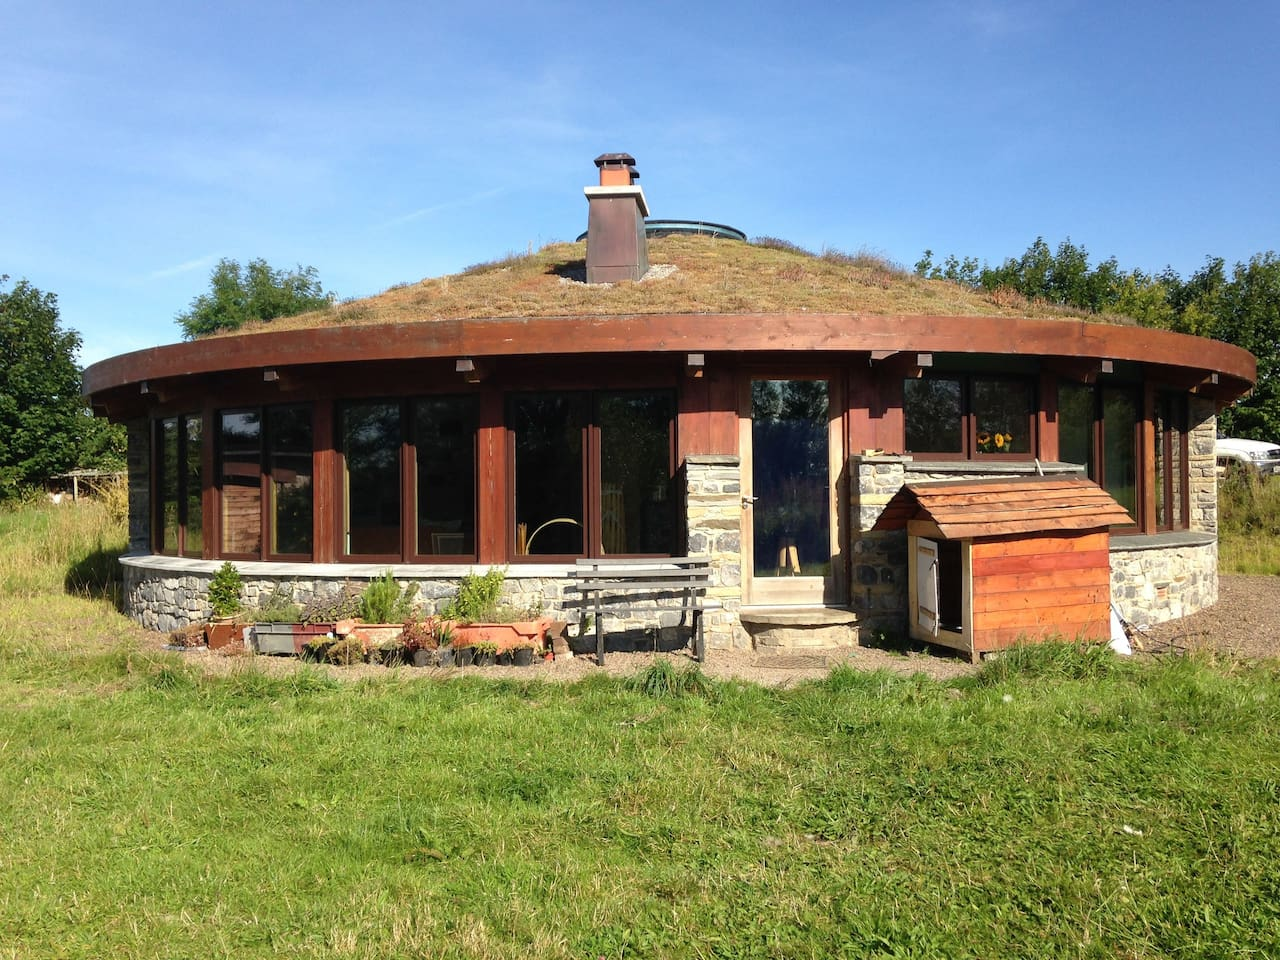 Earth roof on the round house